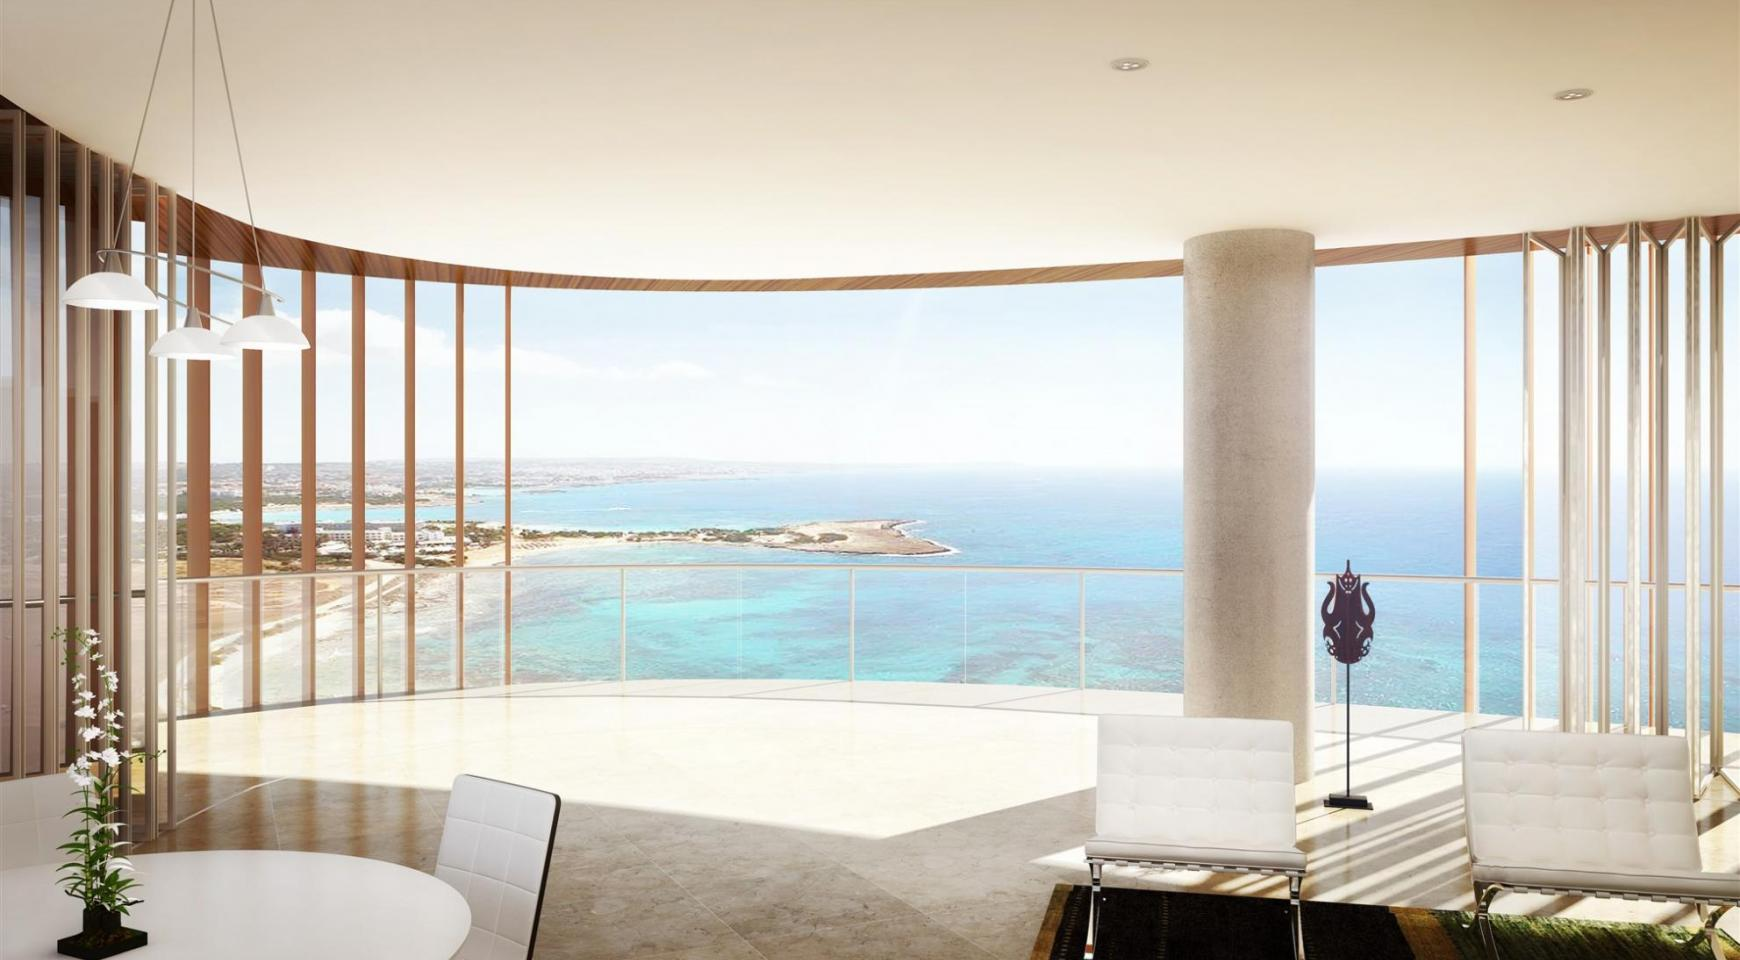 Modern 3 bedroom Apartment in an Exclusive Project by the Sea - 22